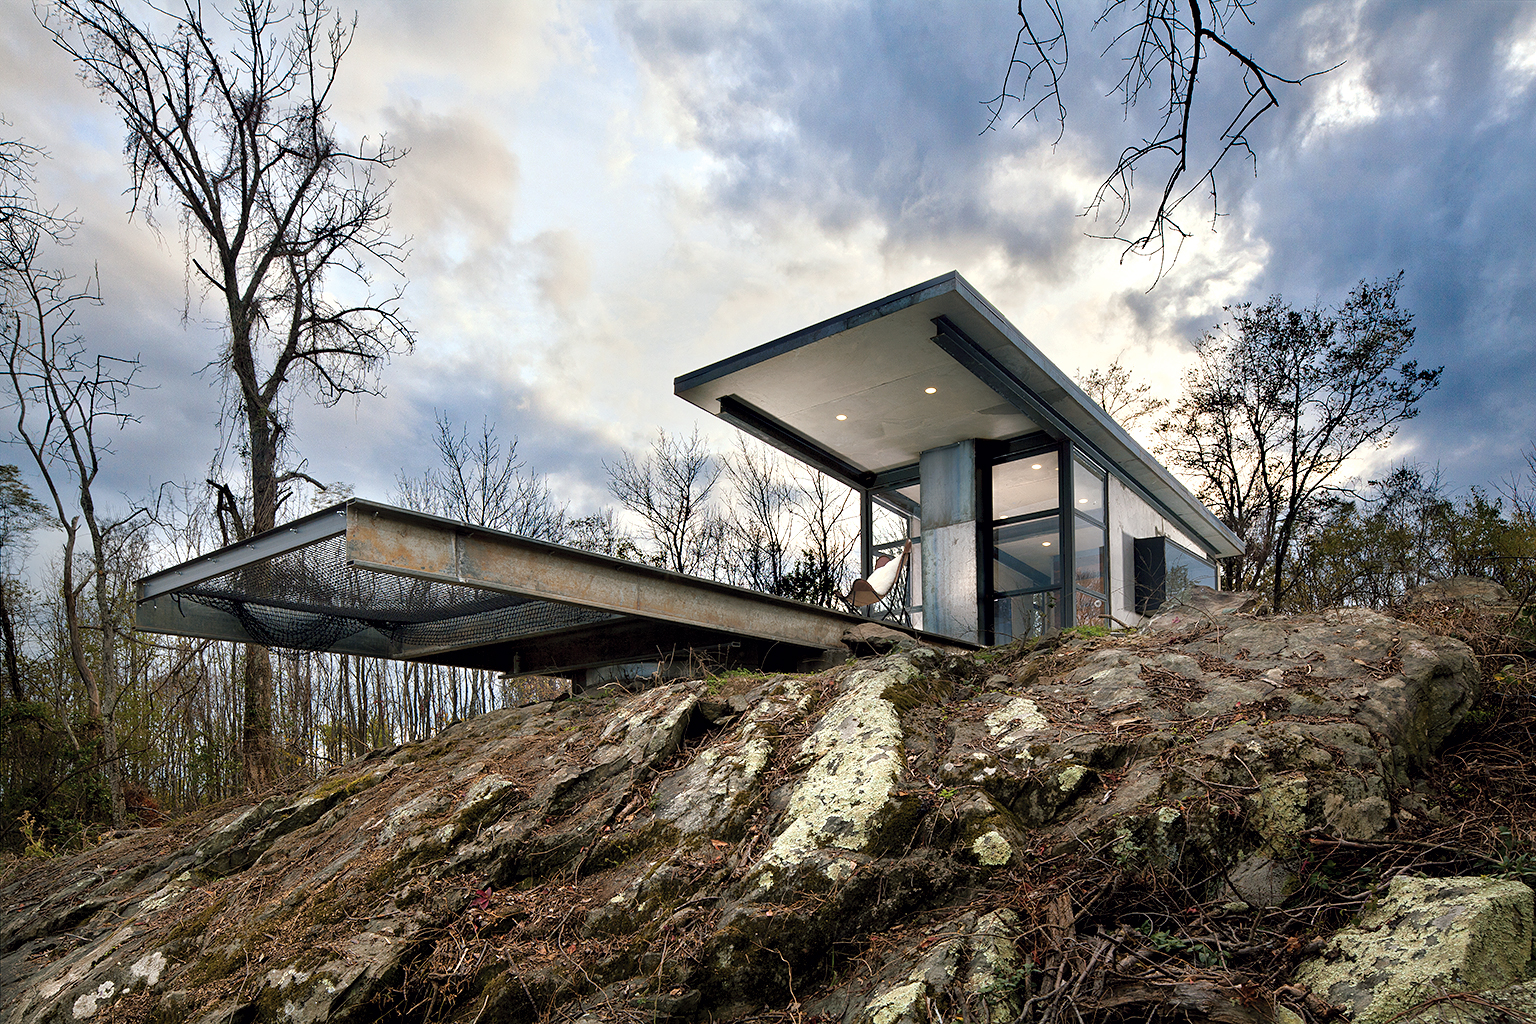 Photographs of Back to Nature house by Mitch Allen.